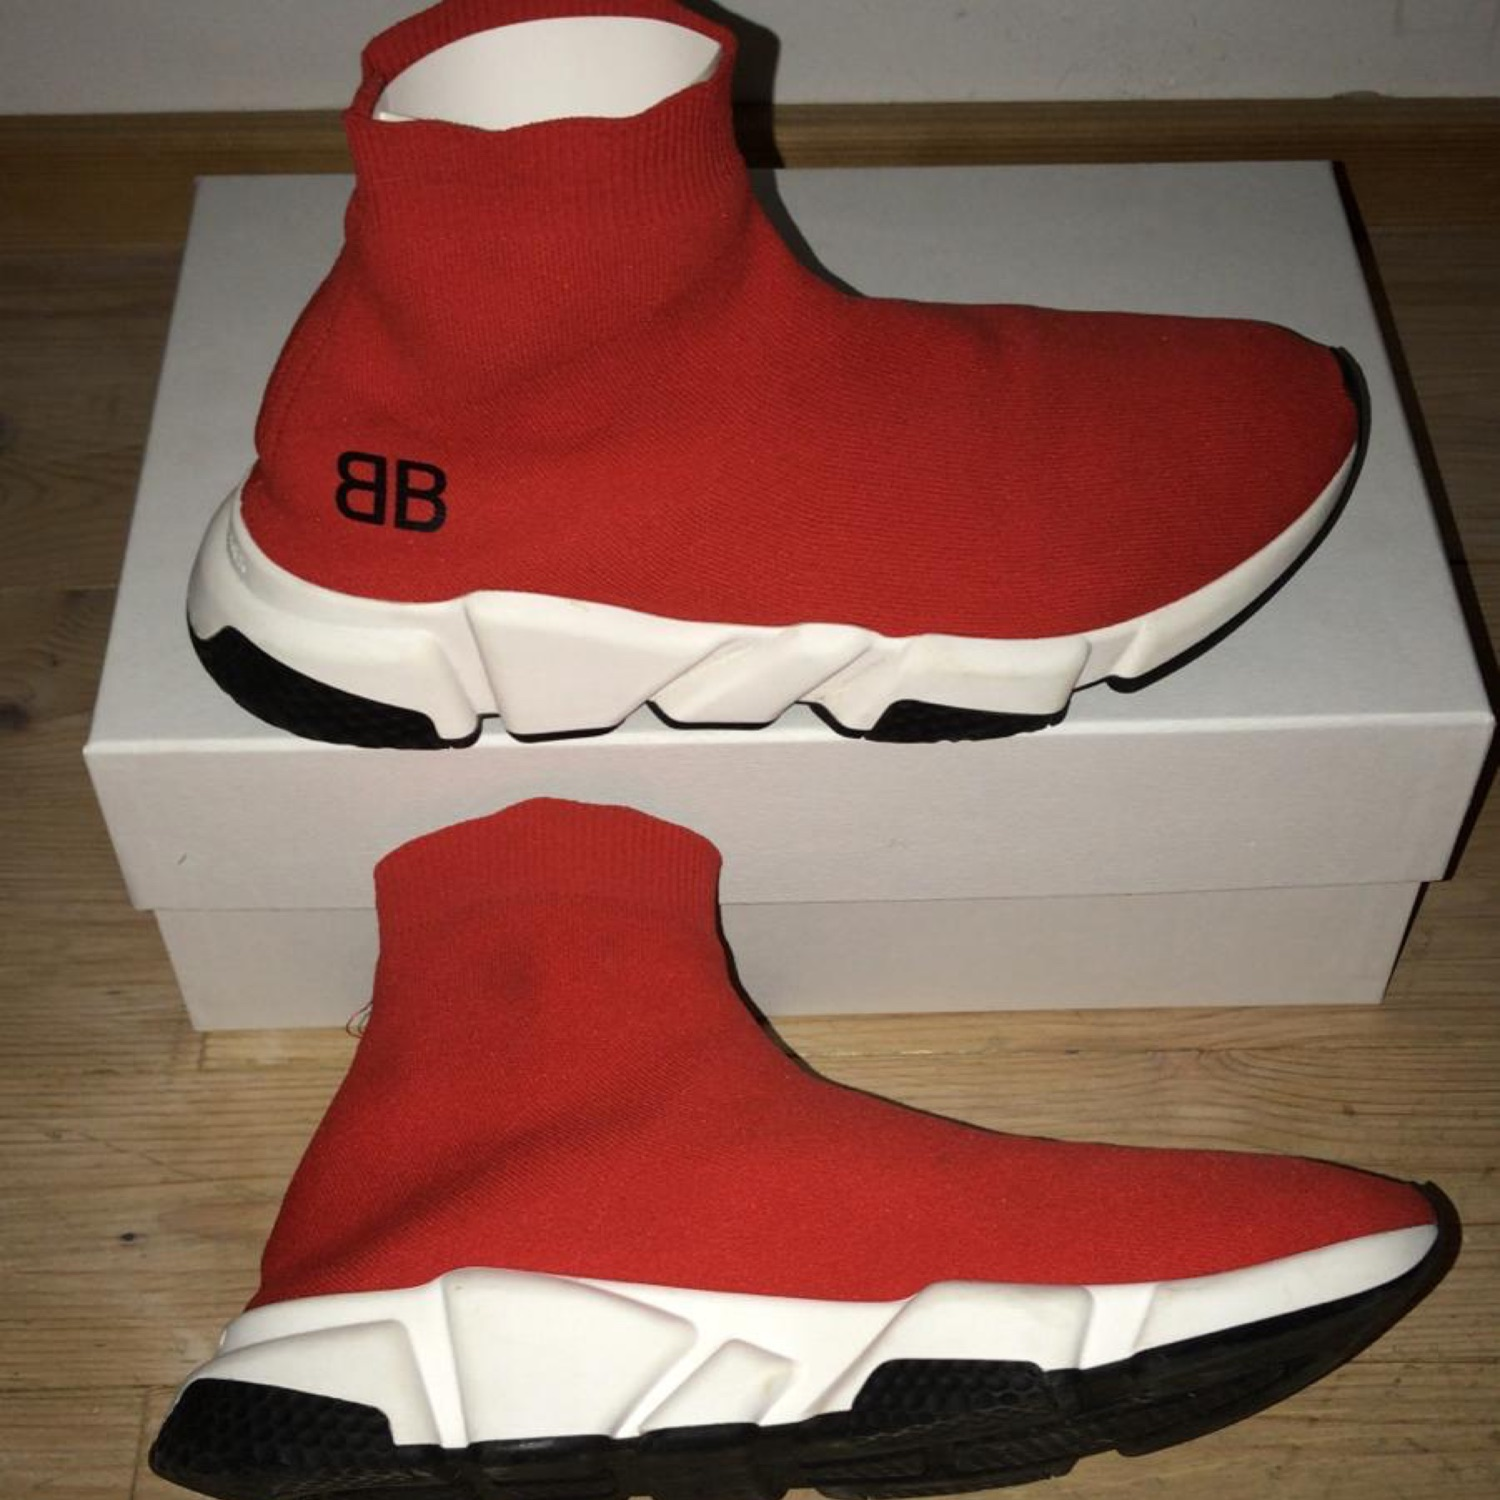 Bought Balenciaga Speed Trainers from